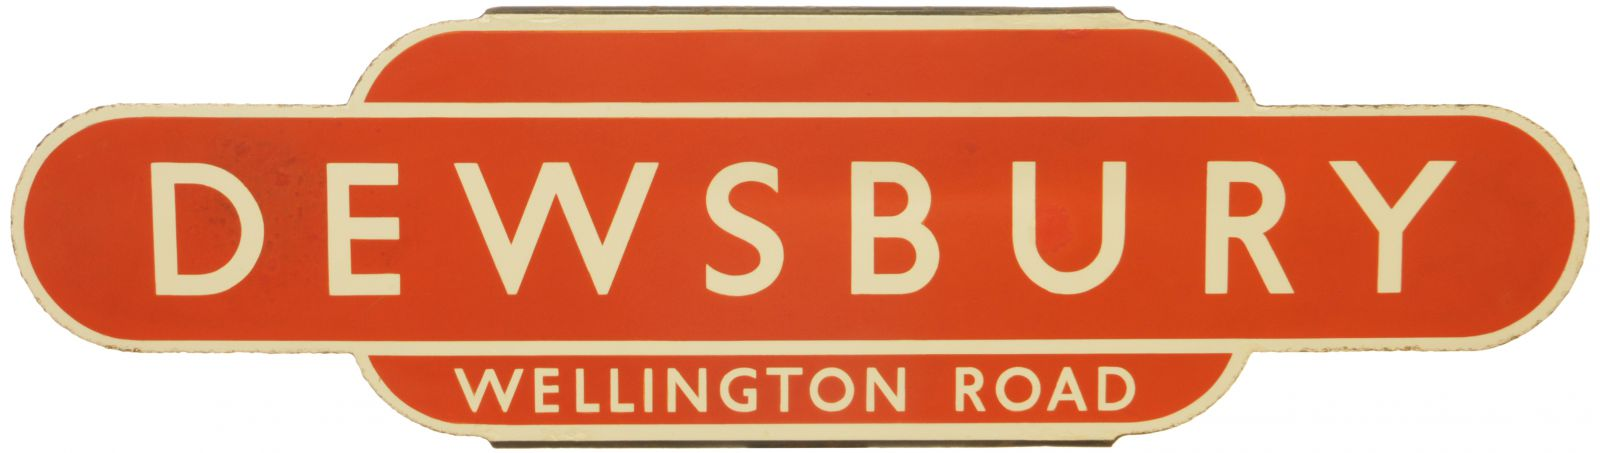 Lot 39 - Railway Station Totem Signs, Dewsbury Wellington Road: A BR(NE) totem sign, DEWSBURY WELLINGTON